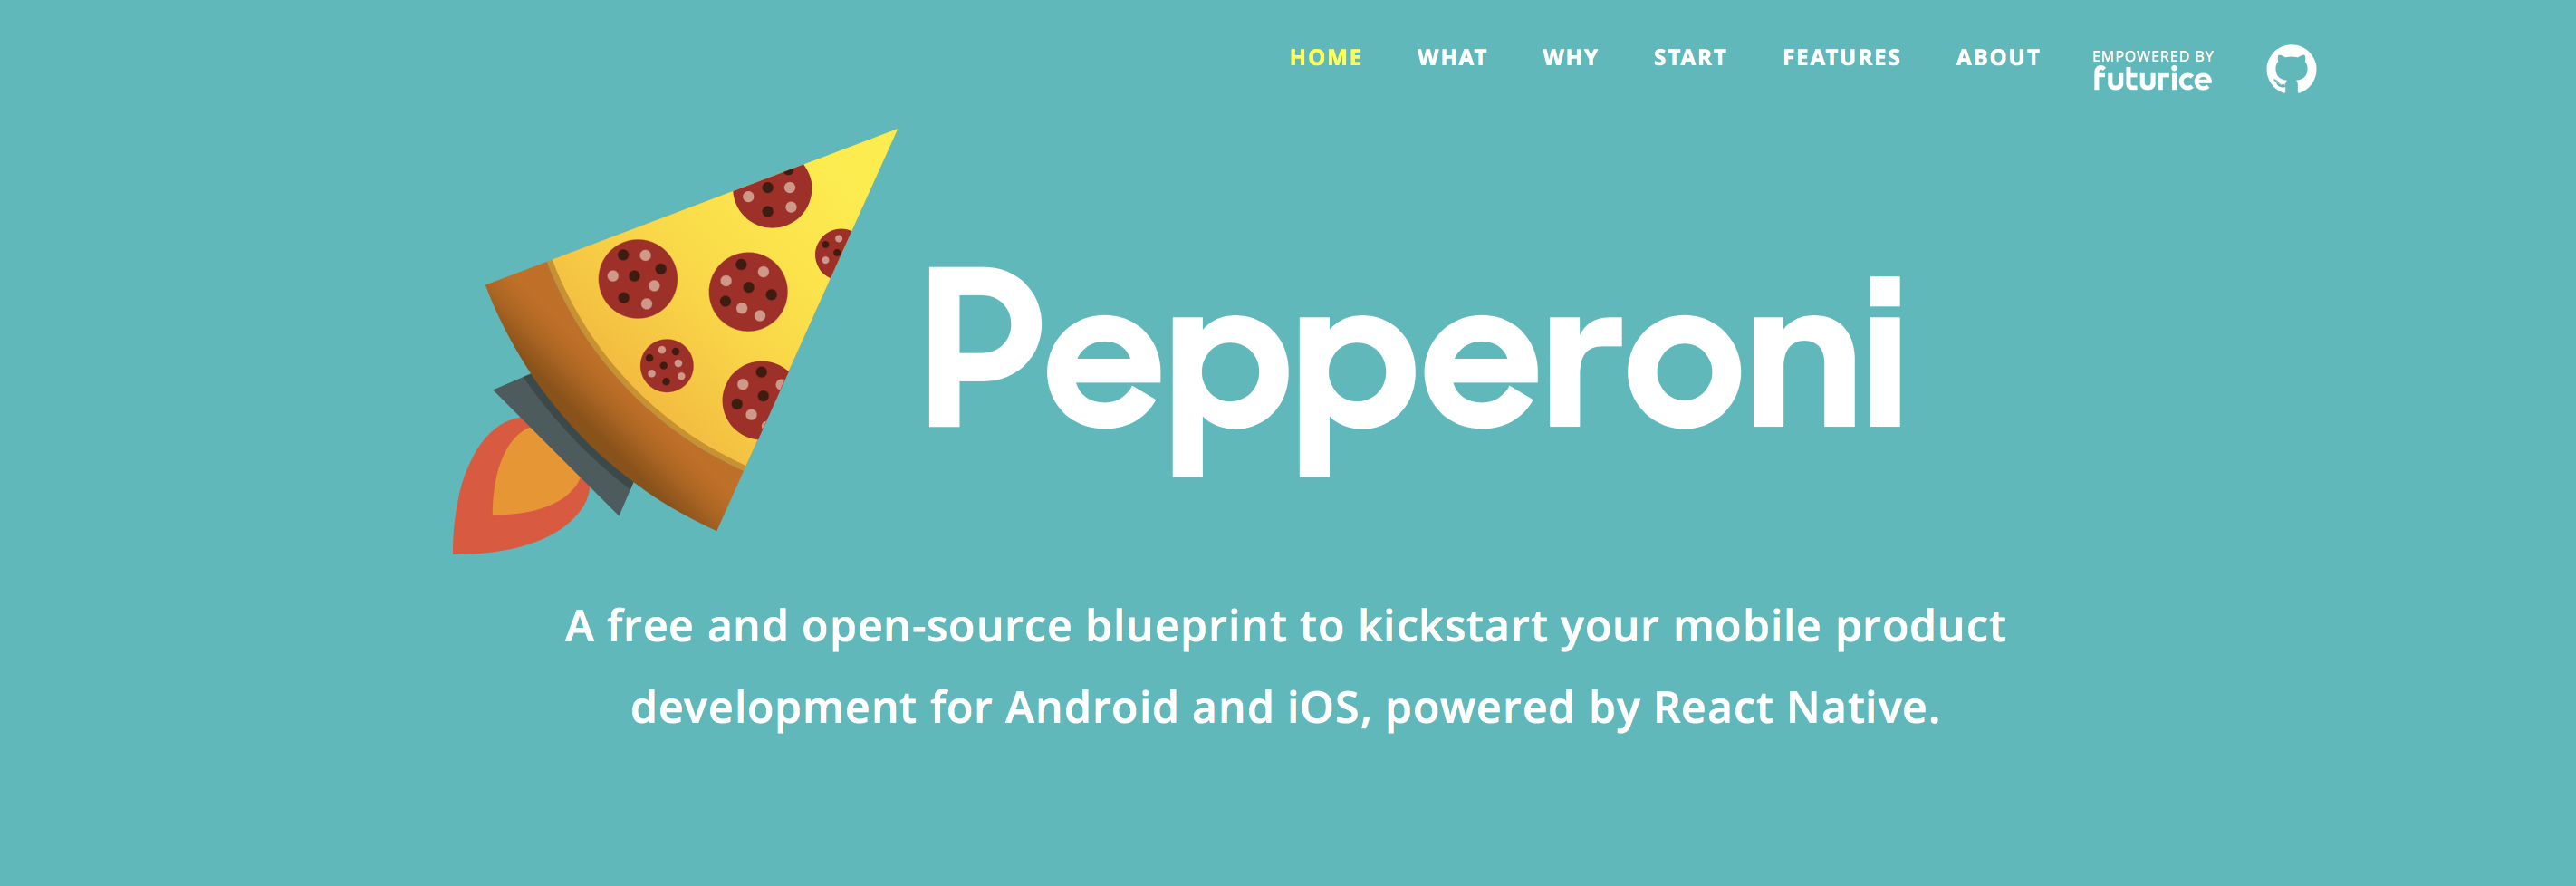 Pepperoni - React Native App Starter Kit for Android and iOS